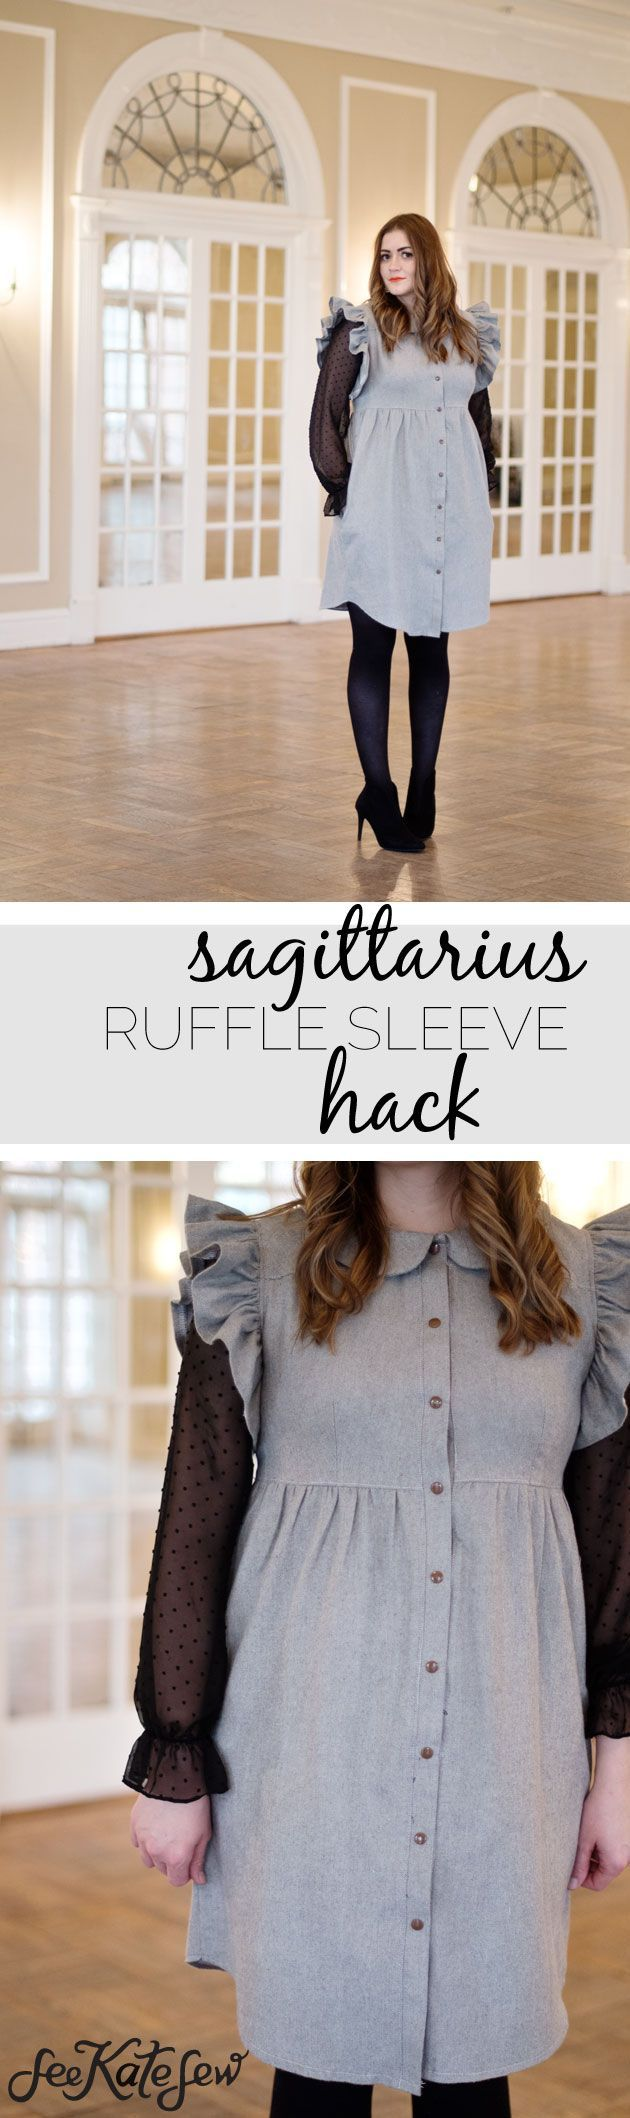 Ruffle Sleeve Hack Tutorial | flannel dress tutorial | diy dress pattern | handmade clothing tutorials | easy diy dress | free sewing tutorials | sewing tips and tricks || See Kate Sew #diydress #sewingtips #sewingpatterns